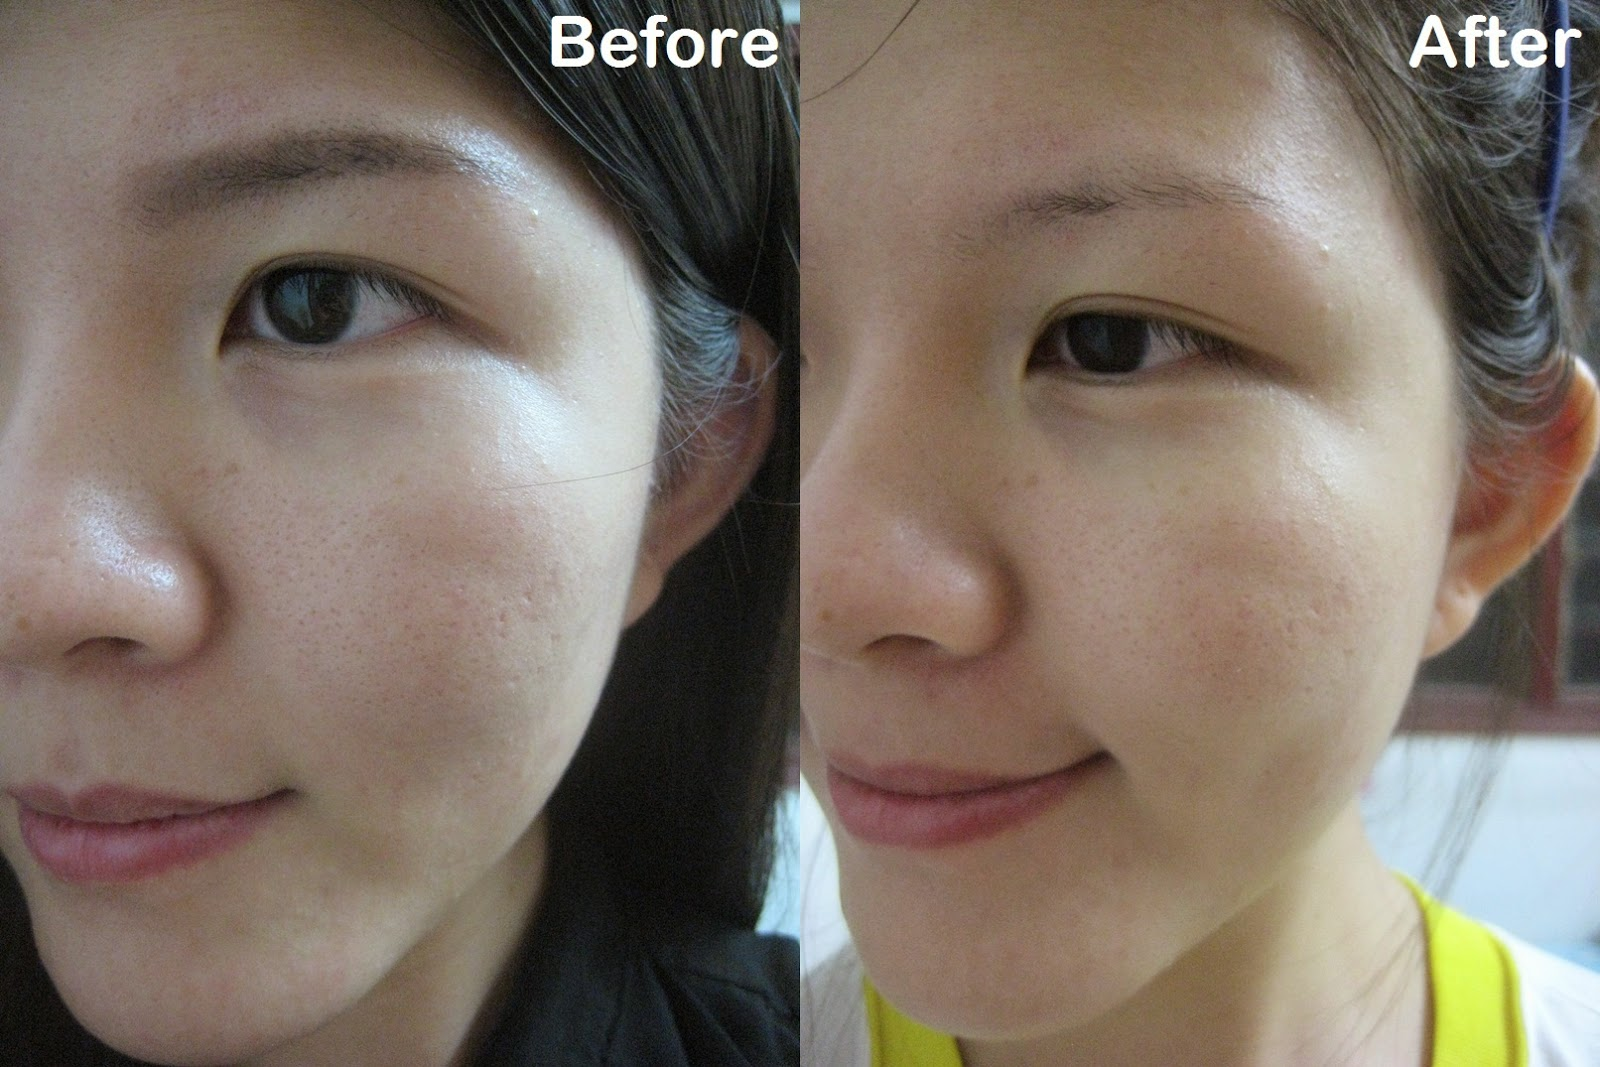 skin toner before and after